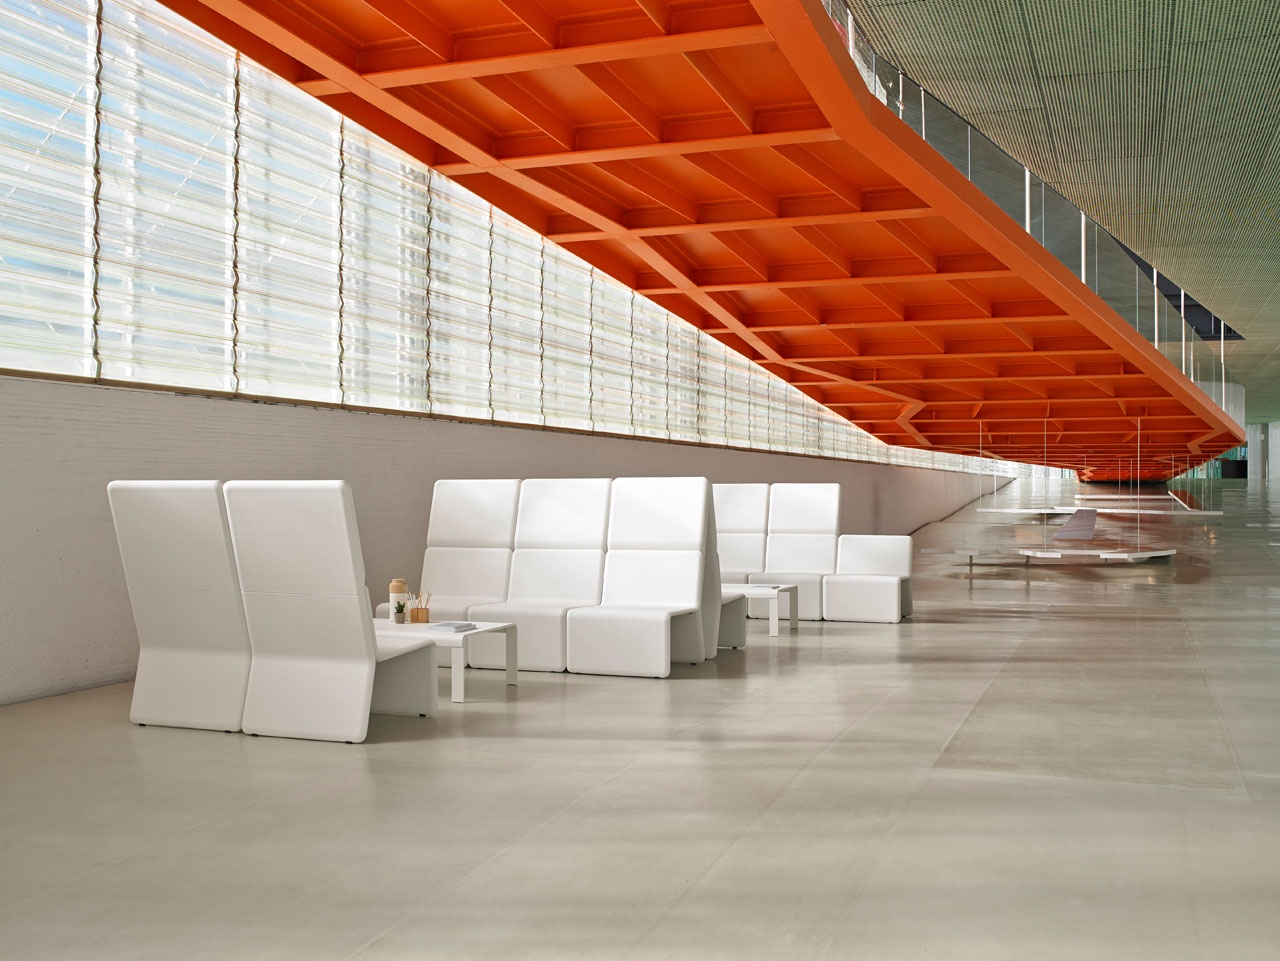 Flexible Shey modular seating.